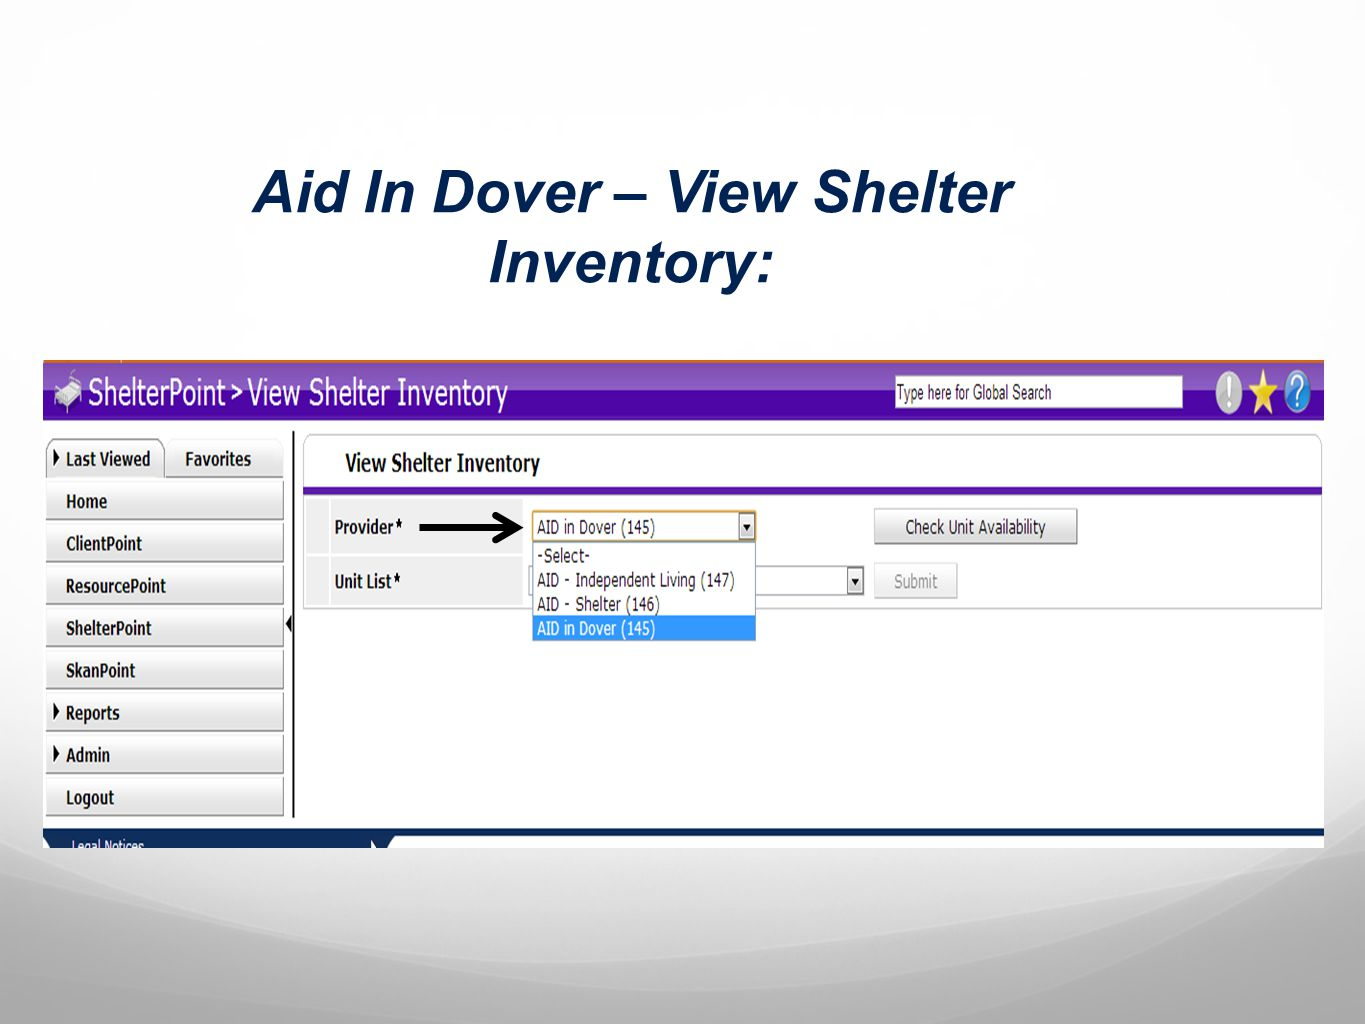 Aid In Dover – View Shelter Inventory: